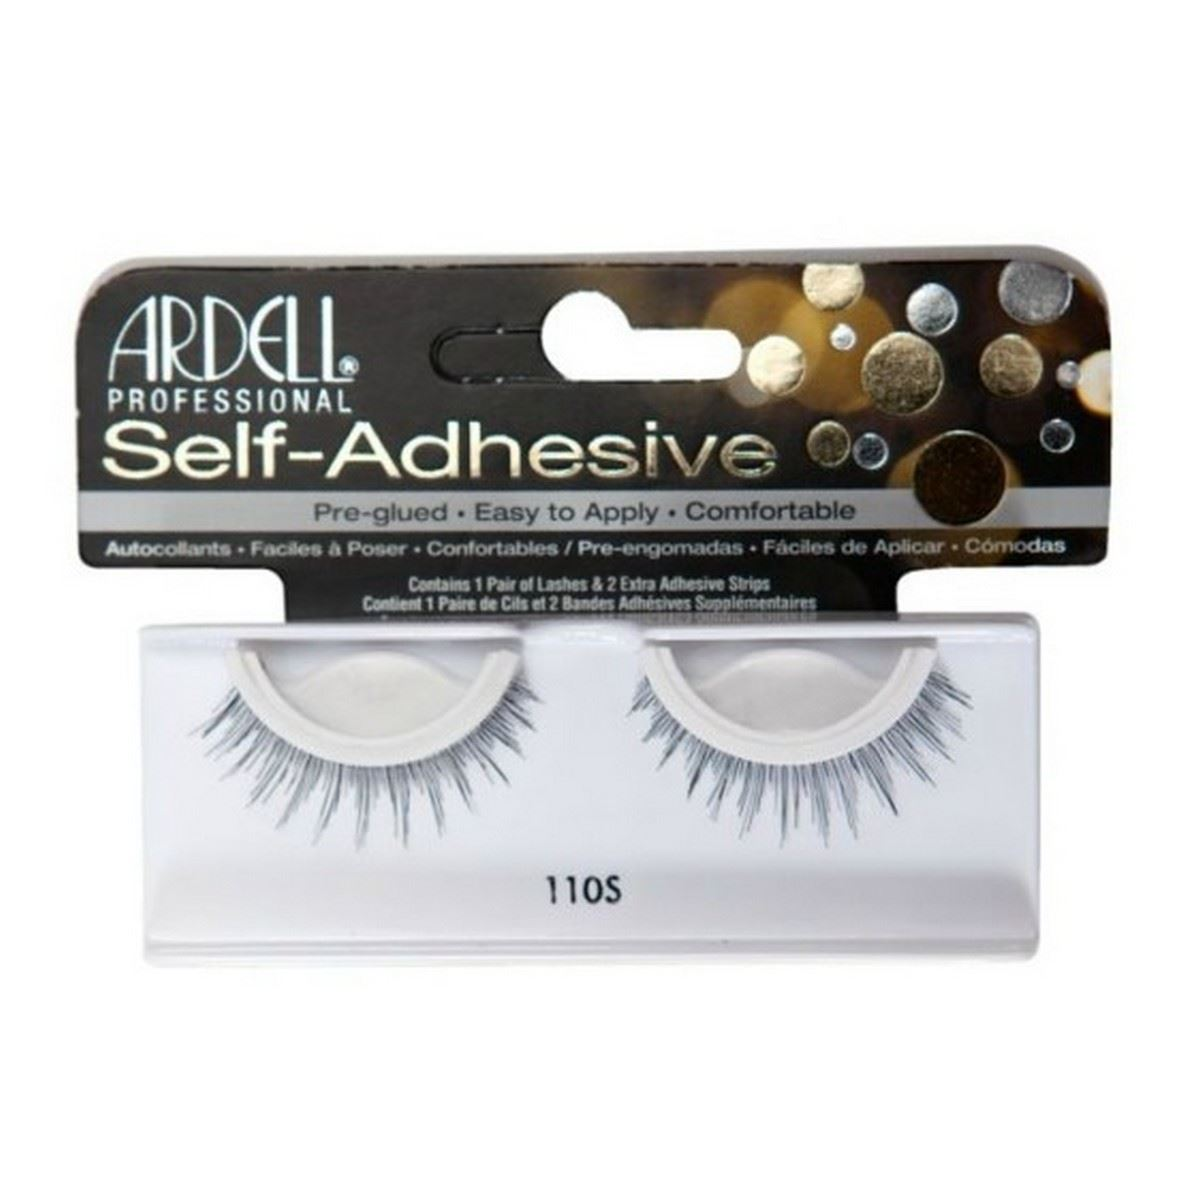 28091e165cc Details about Ardell SELF ADHESIVE Style 110S False Eyelashes - Premium  Quality Fake Lashes!